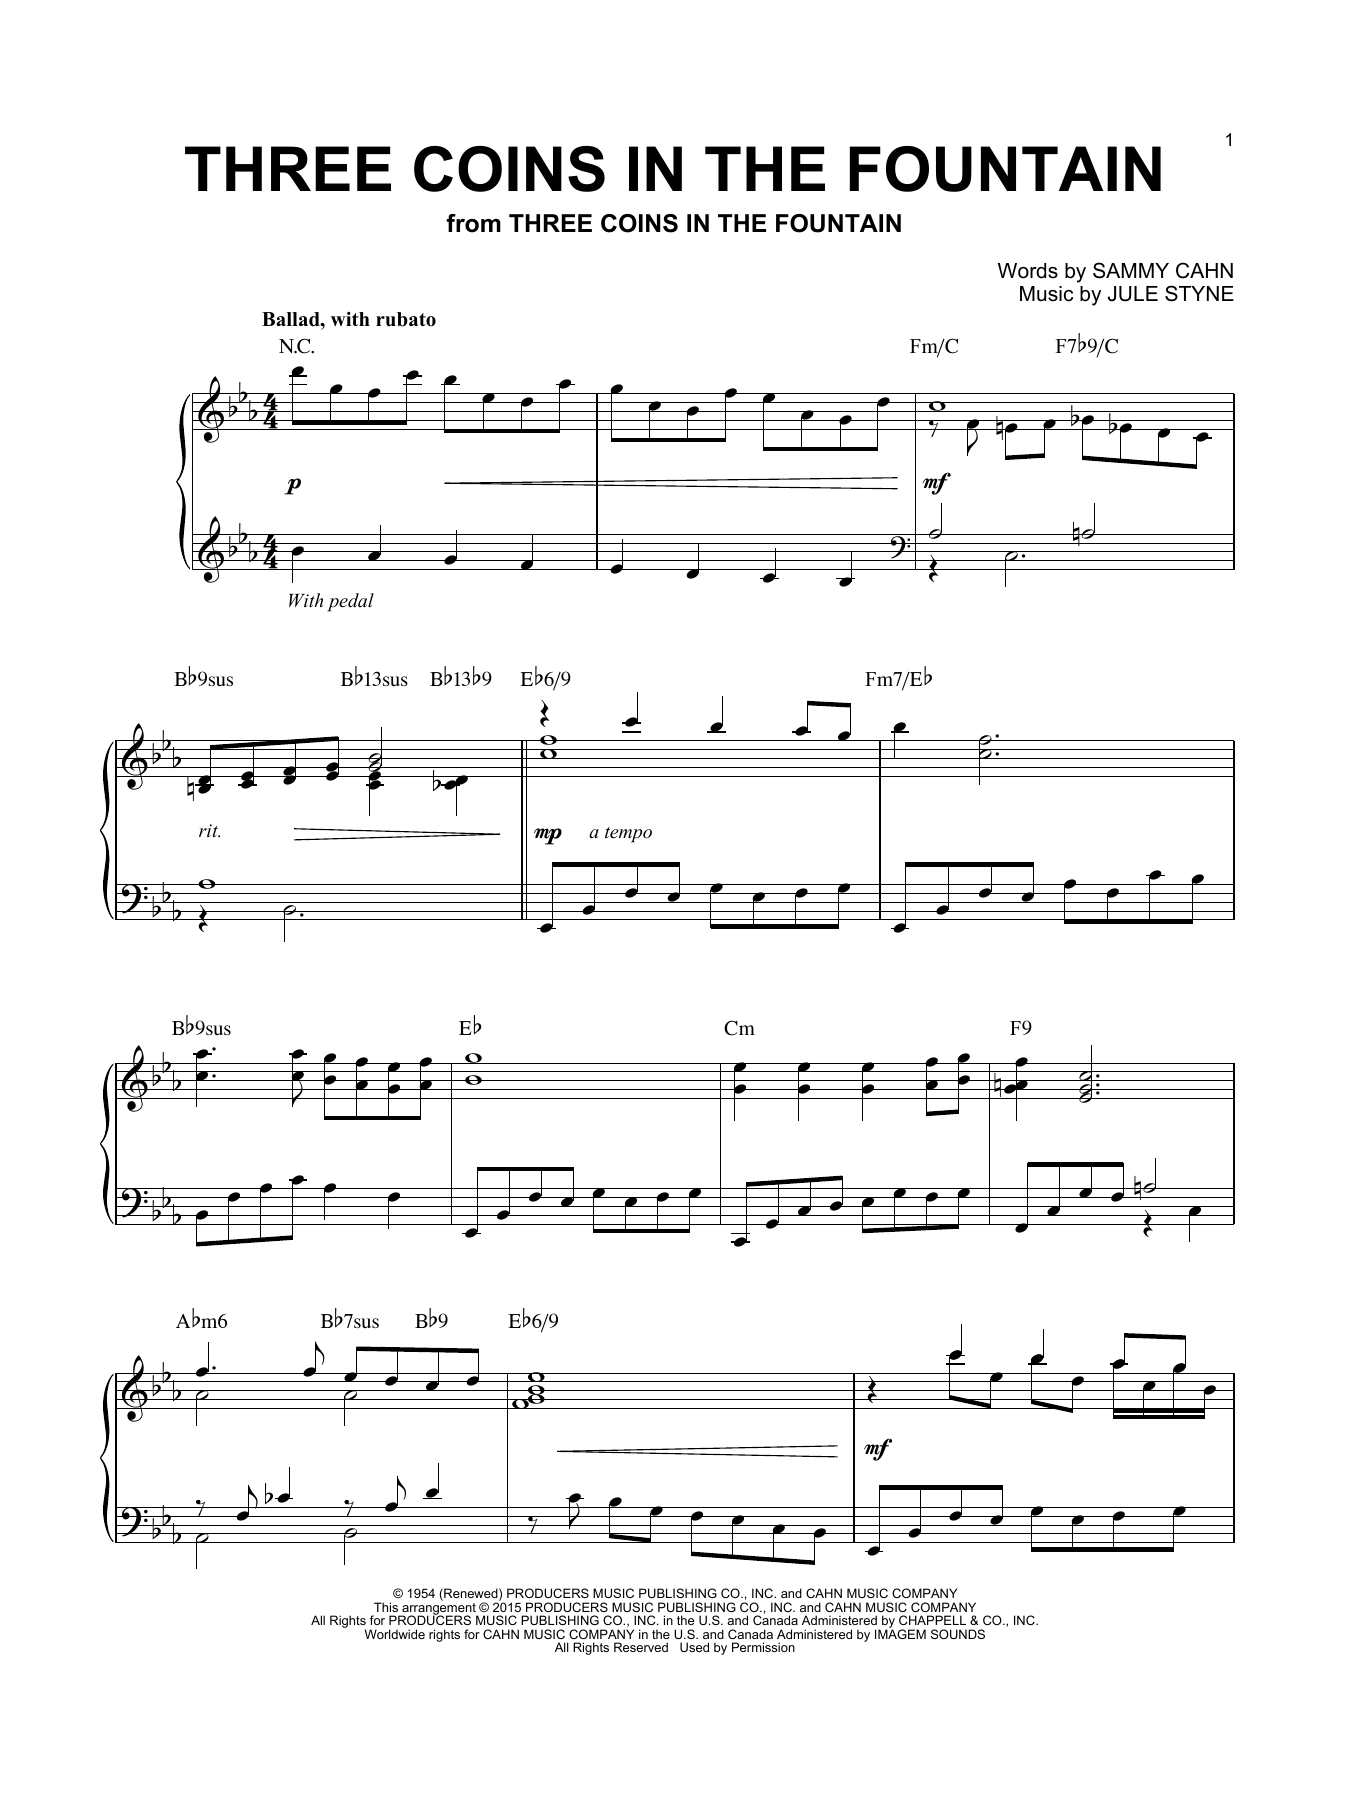 The Four Aces Three Coins In The Fountain sheet music notes and chords